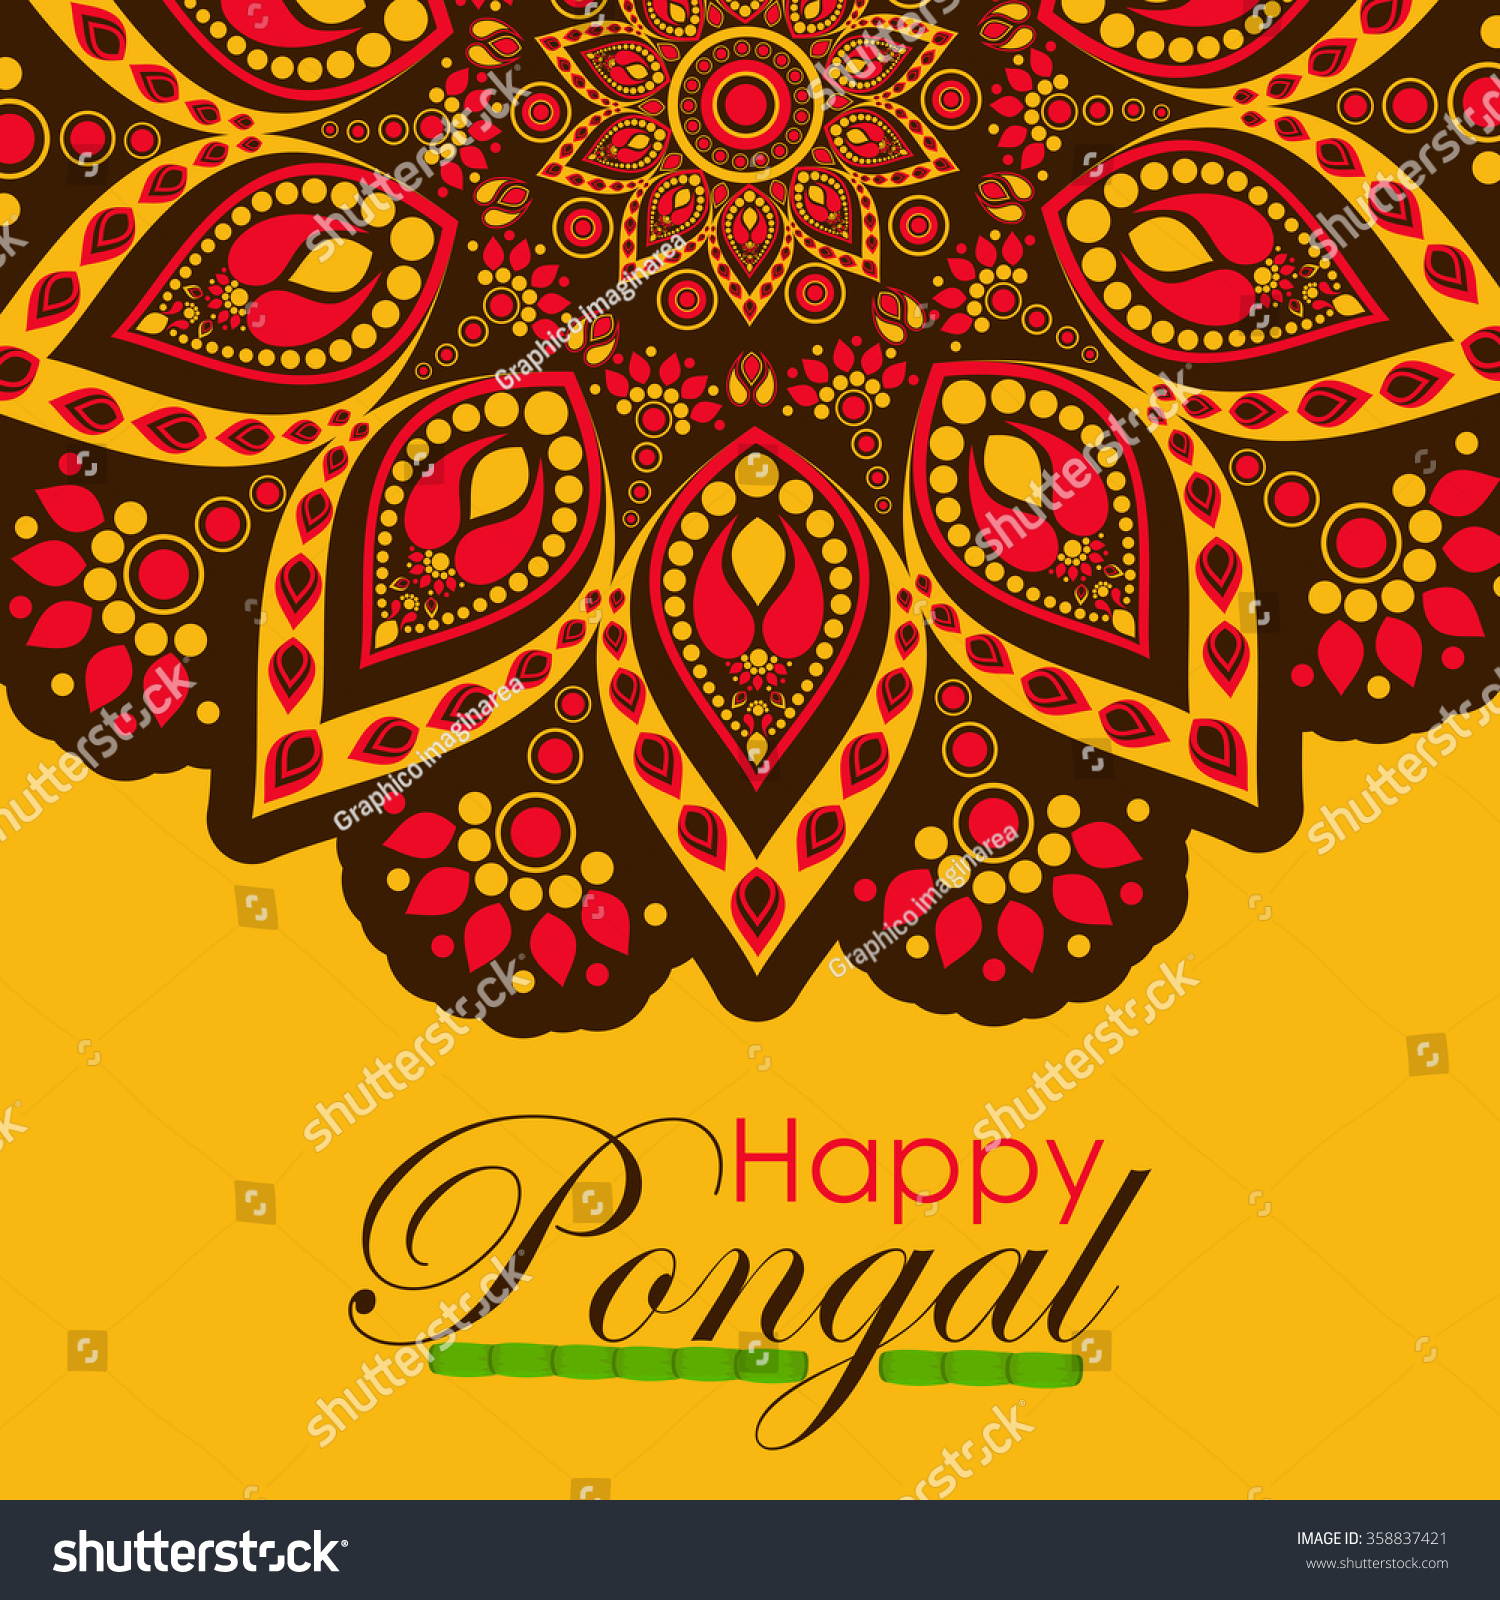 Happy pongal festival design decorated greeting stock vector happy pongal festival design decorated greeting card for south indian harvesting festival kristyandbryce Images